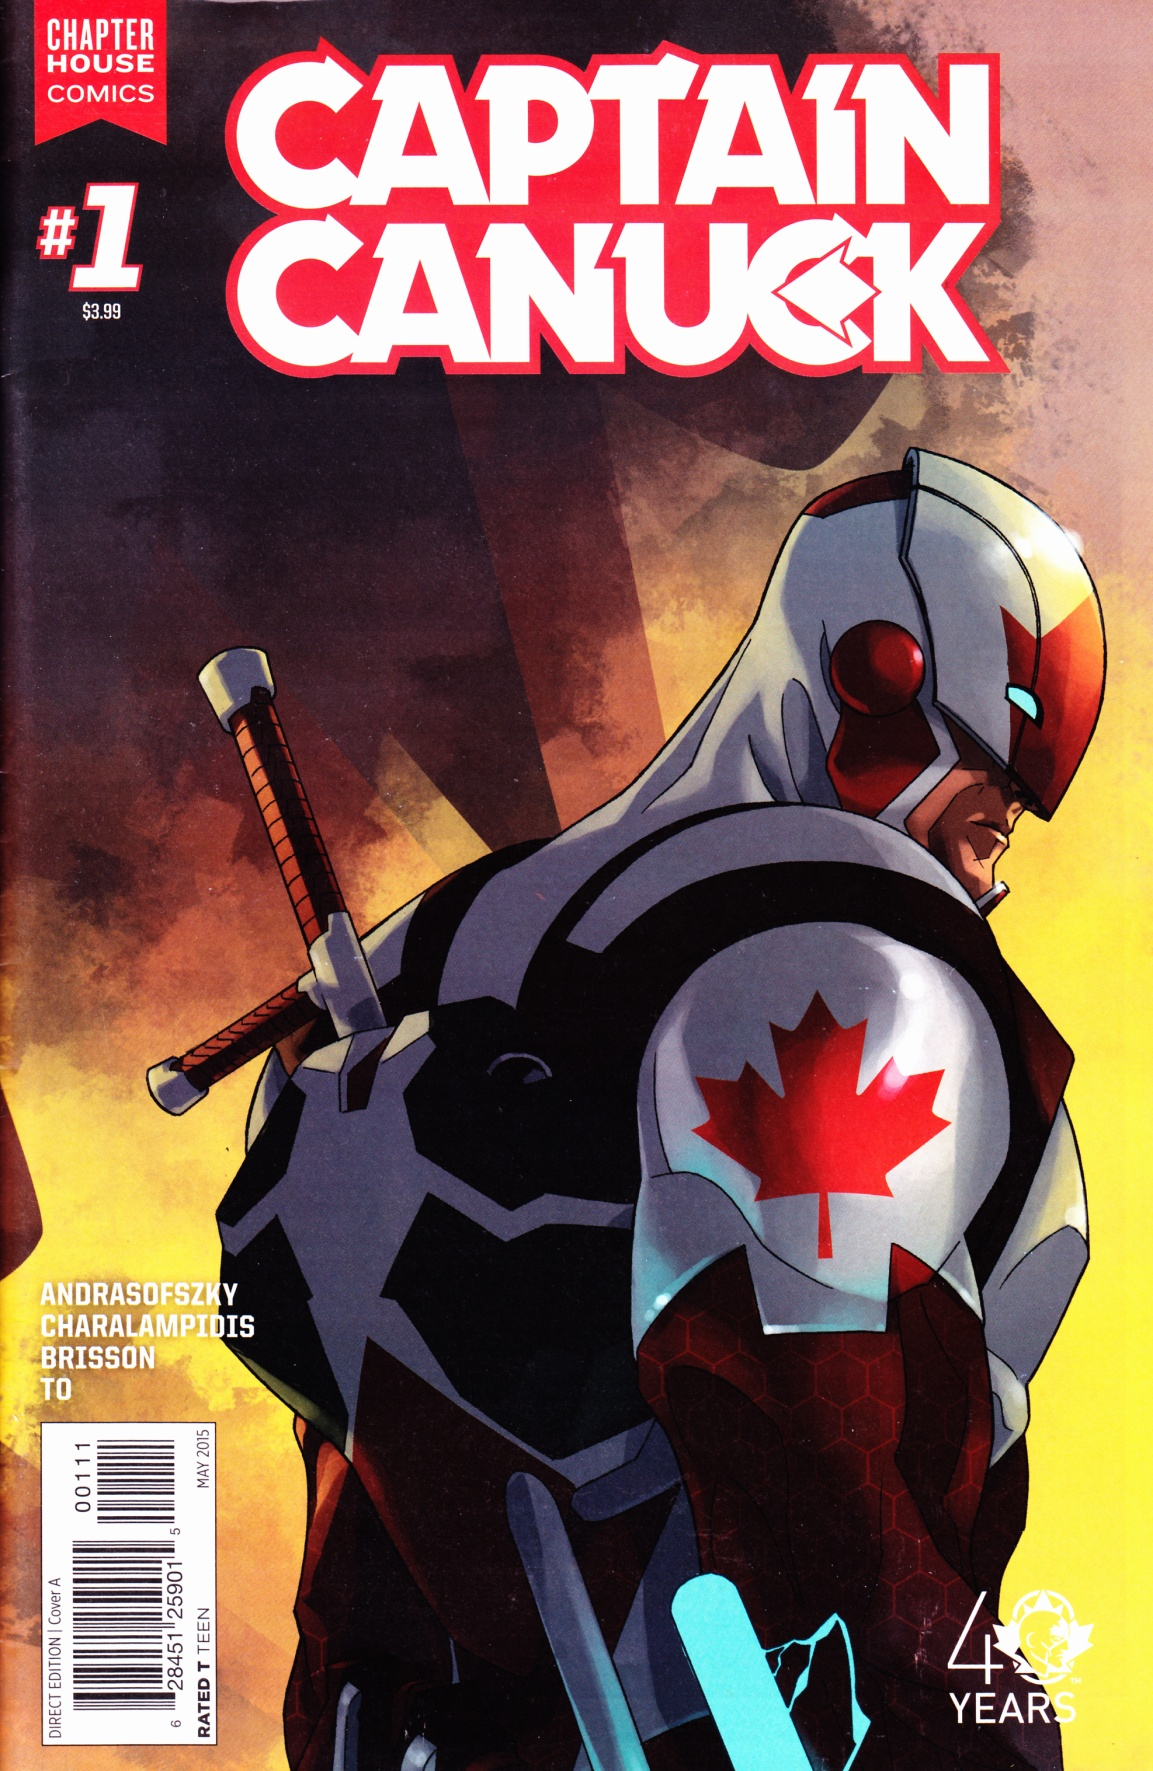 C:\Users\Robert\Documents\CARTOONING ILLUSTRATION ANIMATION\IMAGE CARTOON\IMAGE CARTOON C\CAPT CANUCK, Captain Canuck, 1, May 2015, fc.jpg